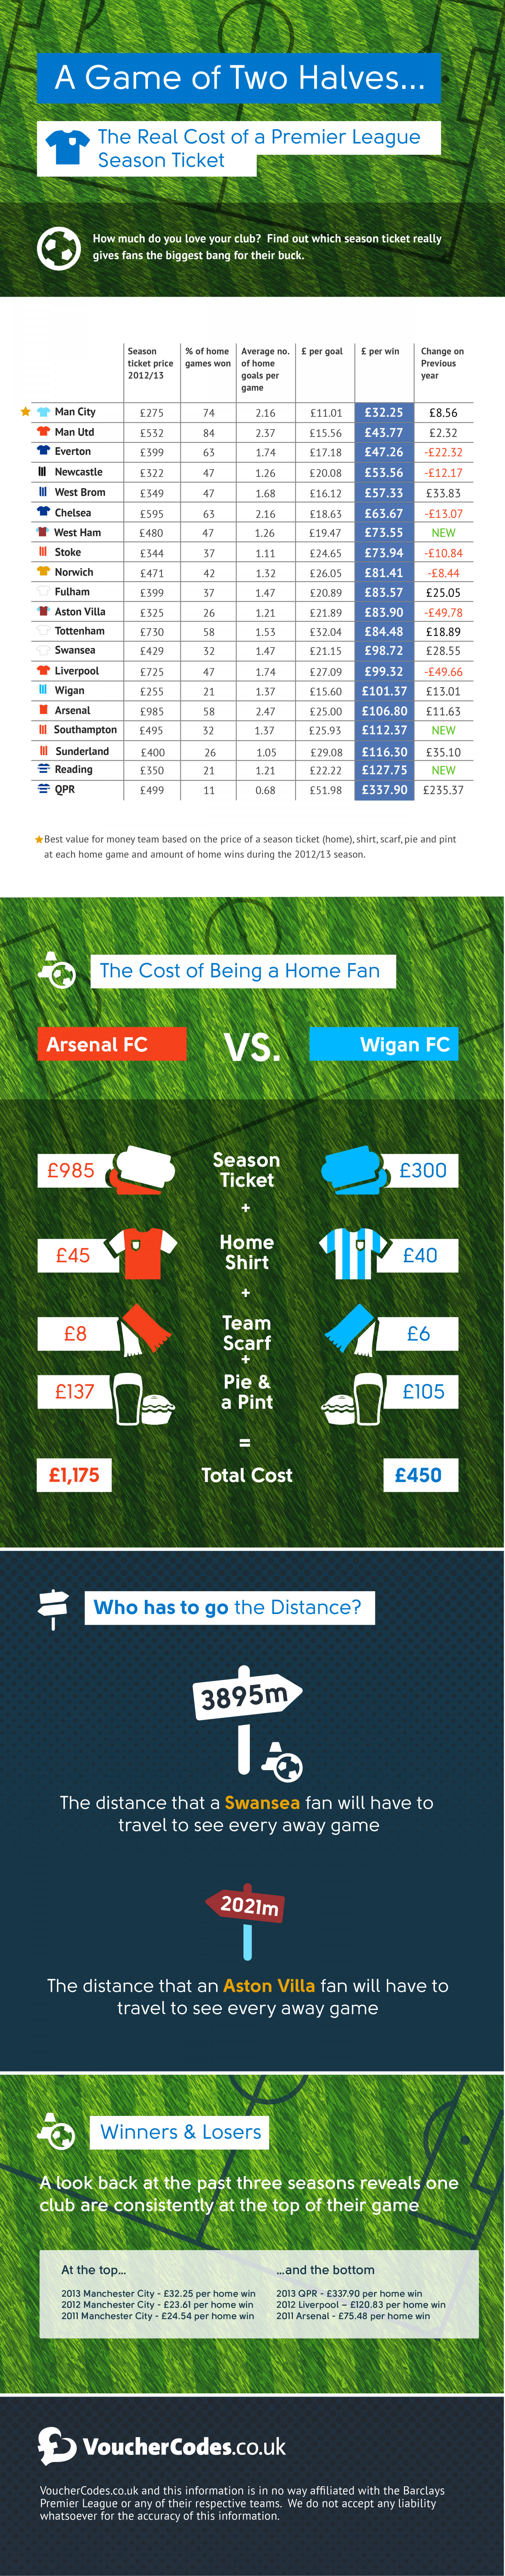 The True Price of Being a Football Fan 2013 Infographic